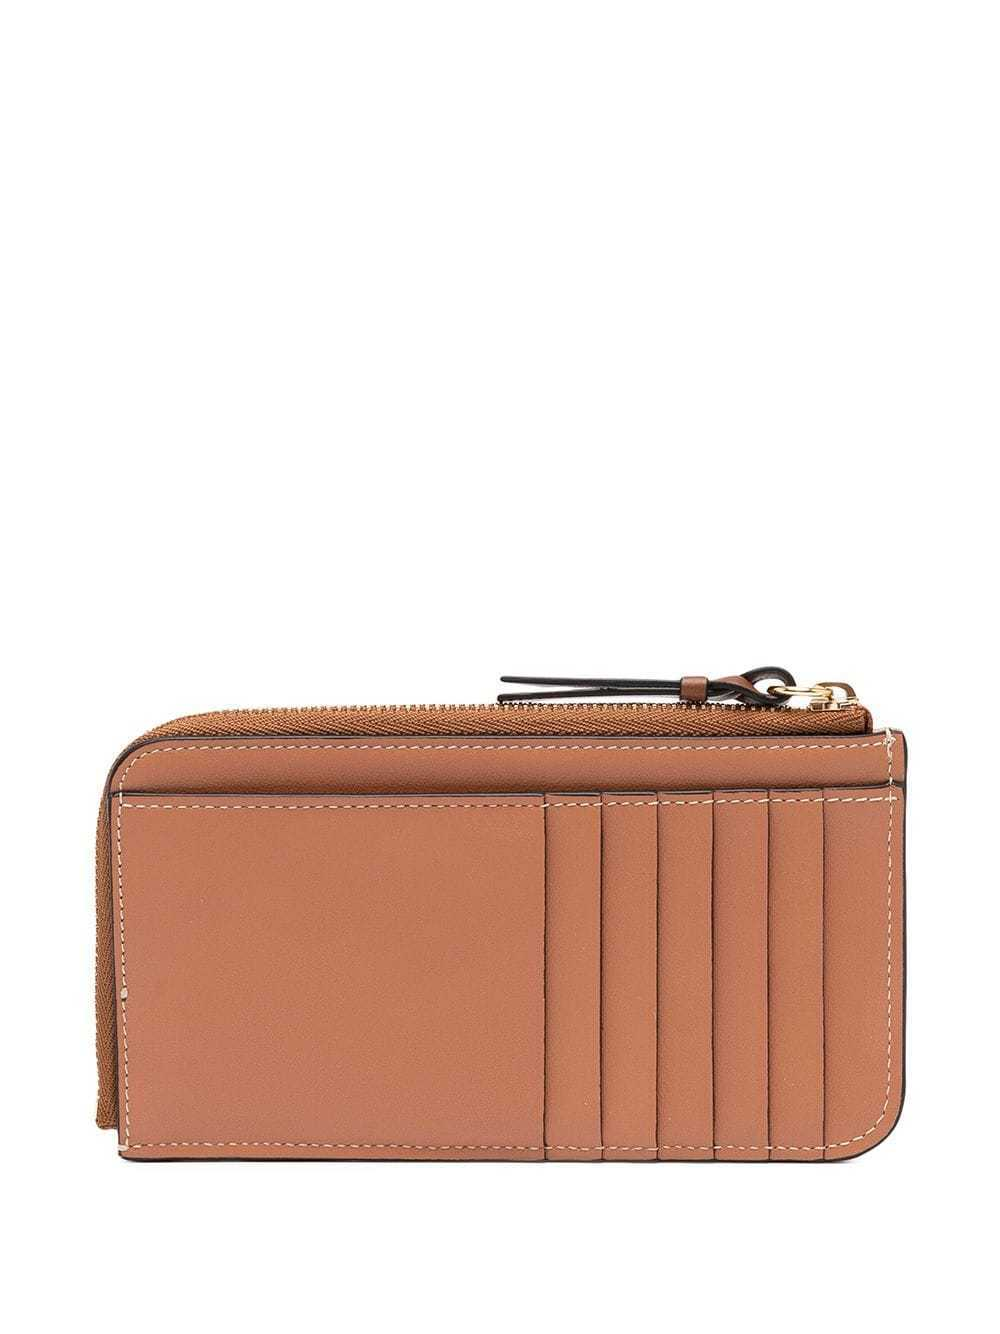 shop chloe and amelie wallets & card holders